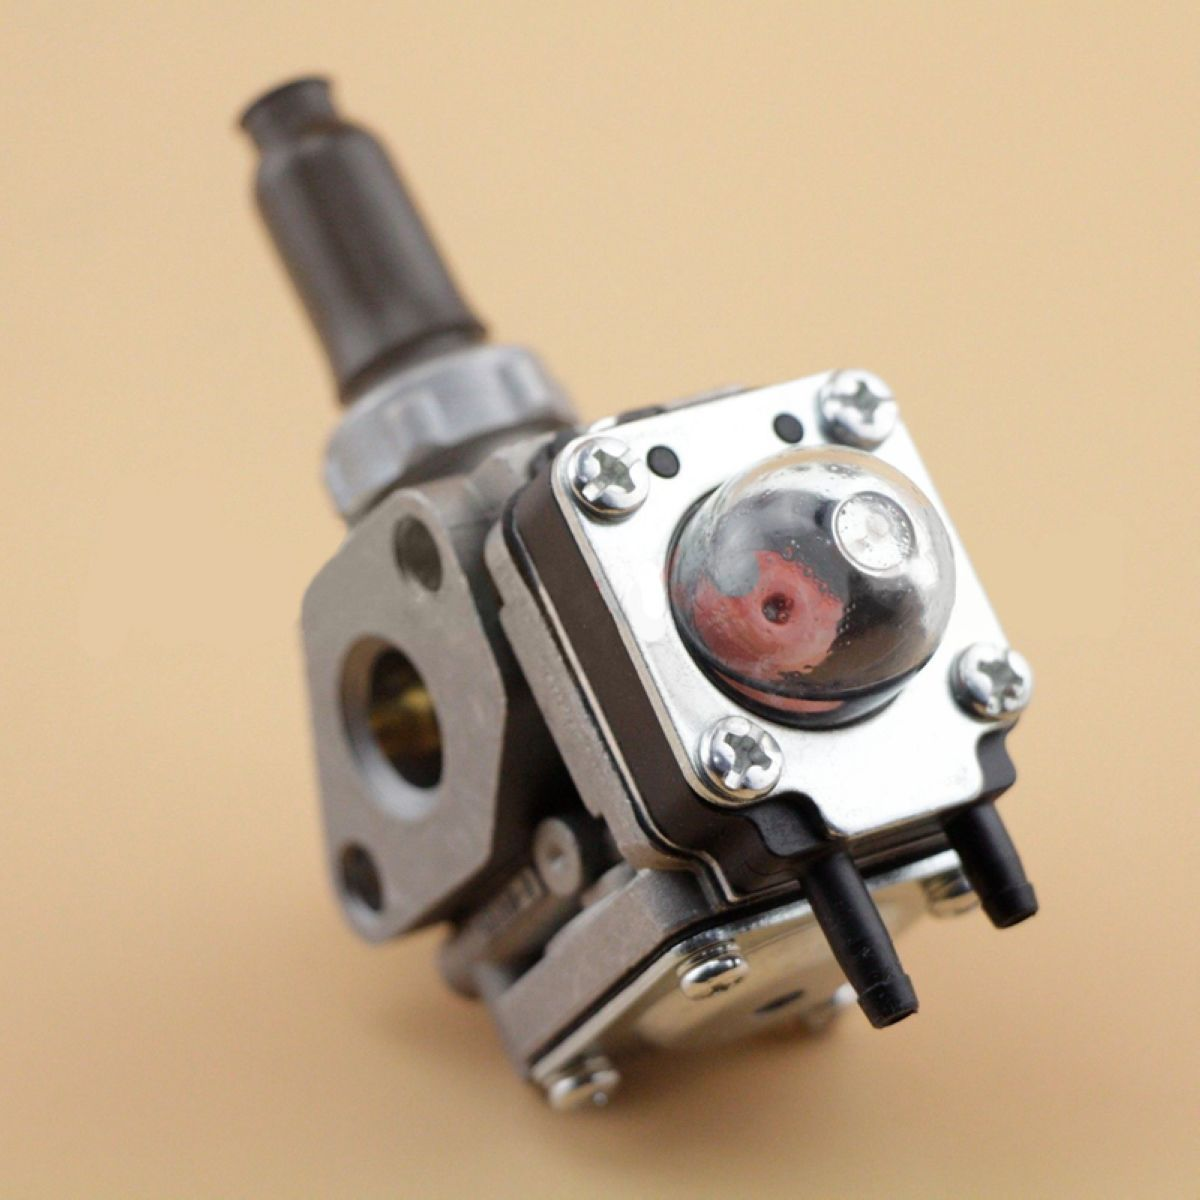 Carb Carburetor Replacement For Kawasaki Th43 Th48 Engine Strimmer Bushcutter Garden Water